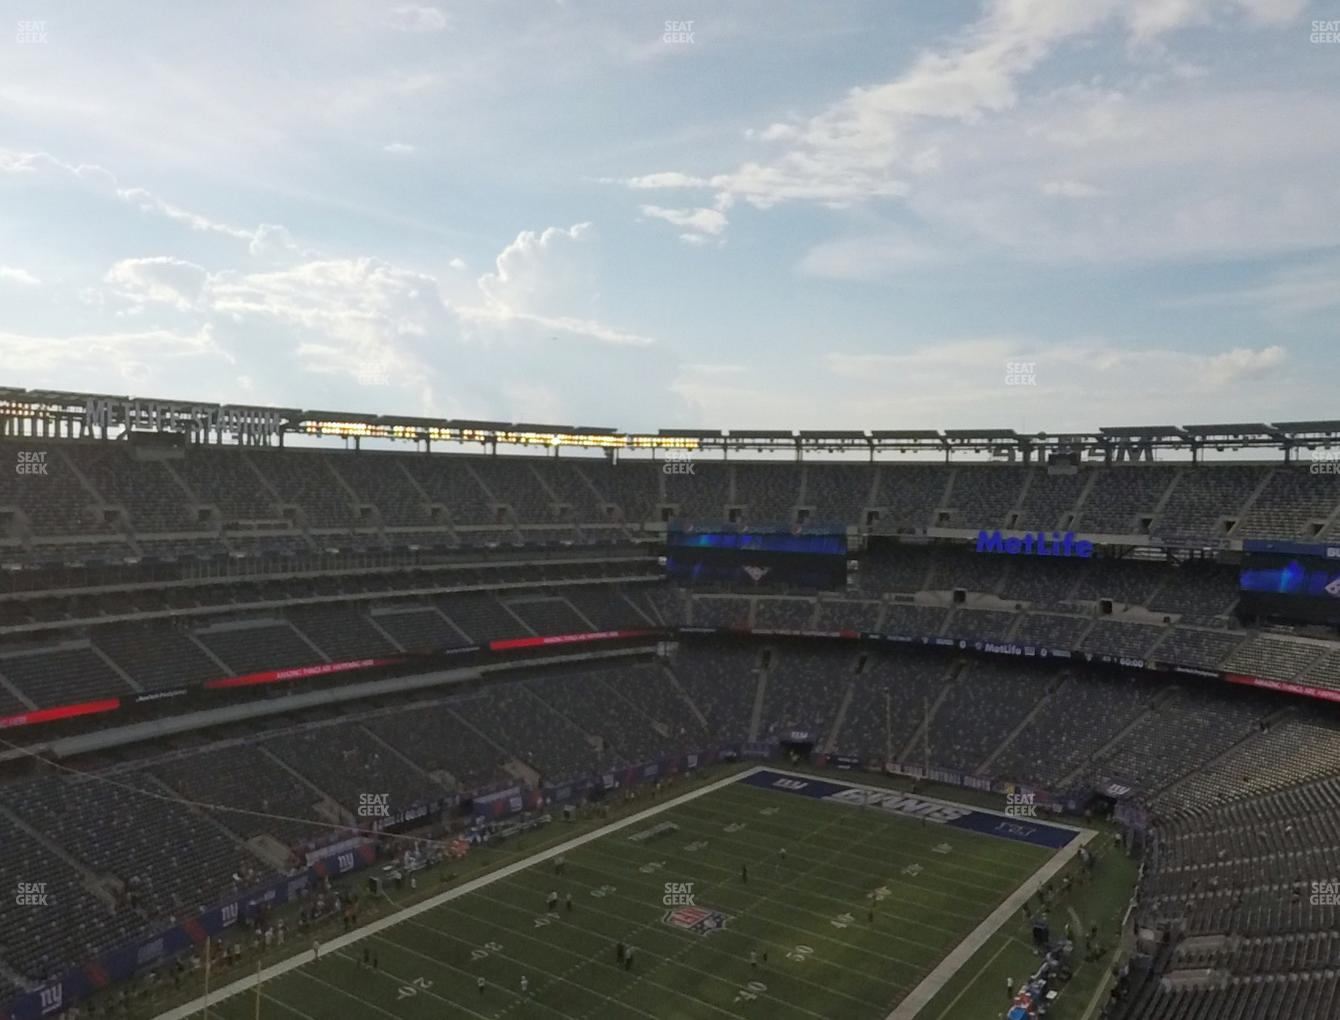 005fb905a76 New York Jets at MetLife Stadium Section 321 View ...